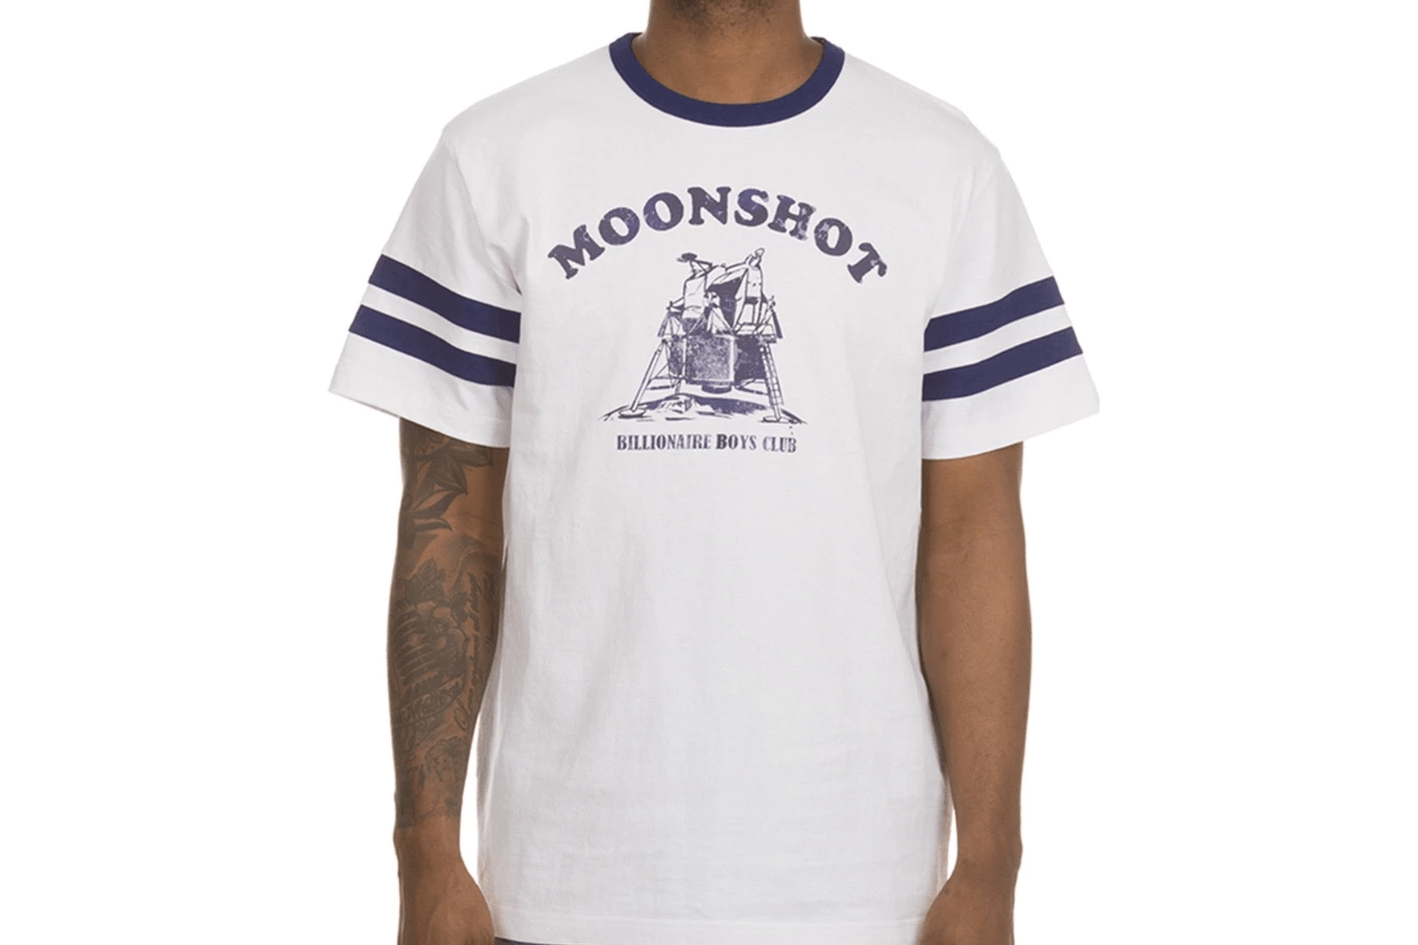 BB MOONSHOT S/S KNIT MENS SOFTGOODS BILLIONAIRE BOYS CLUB